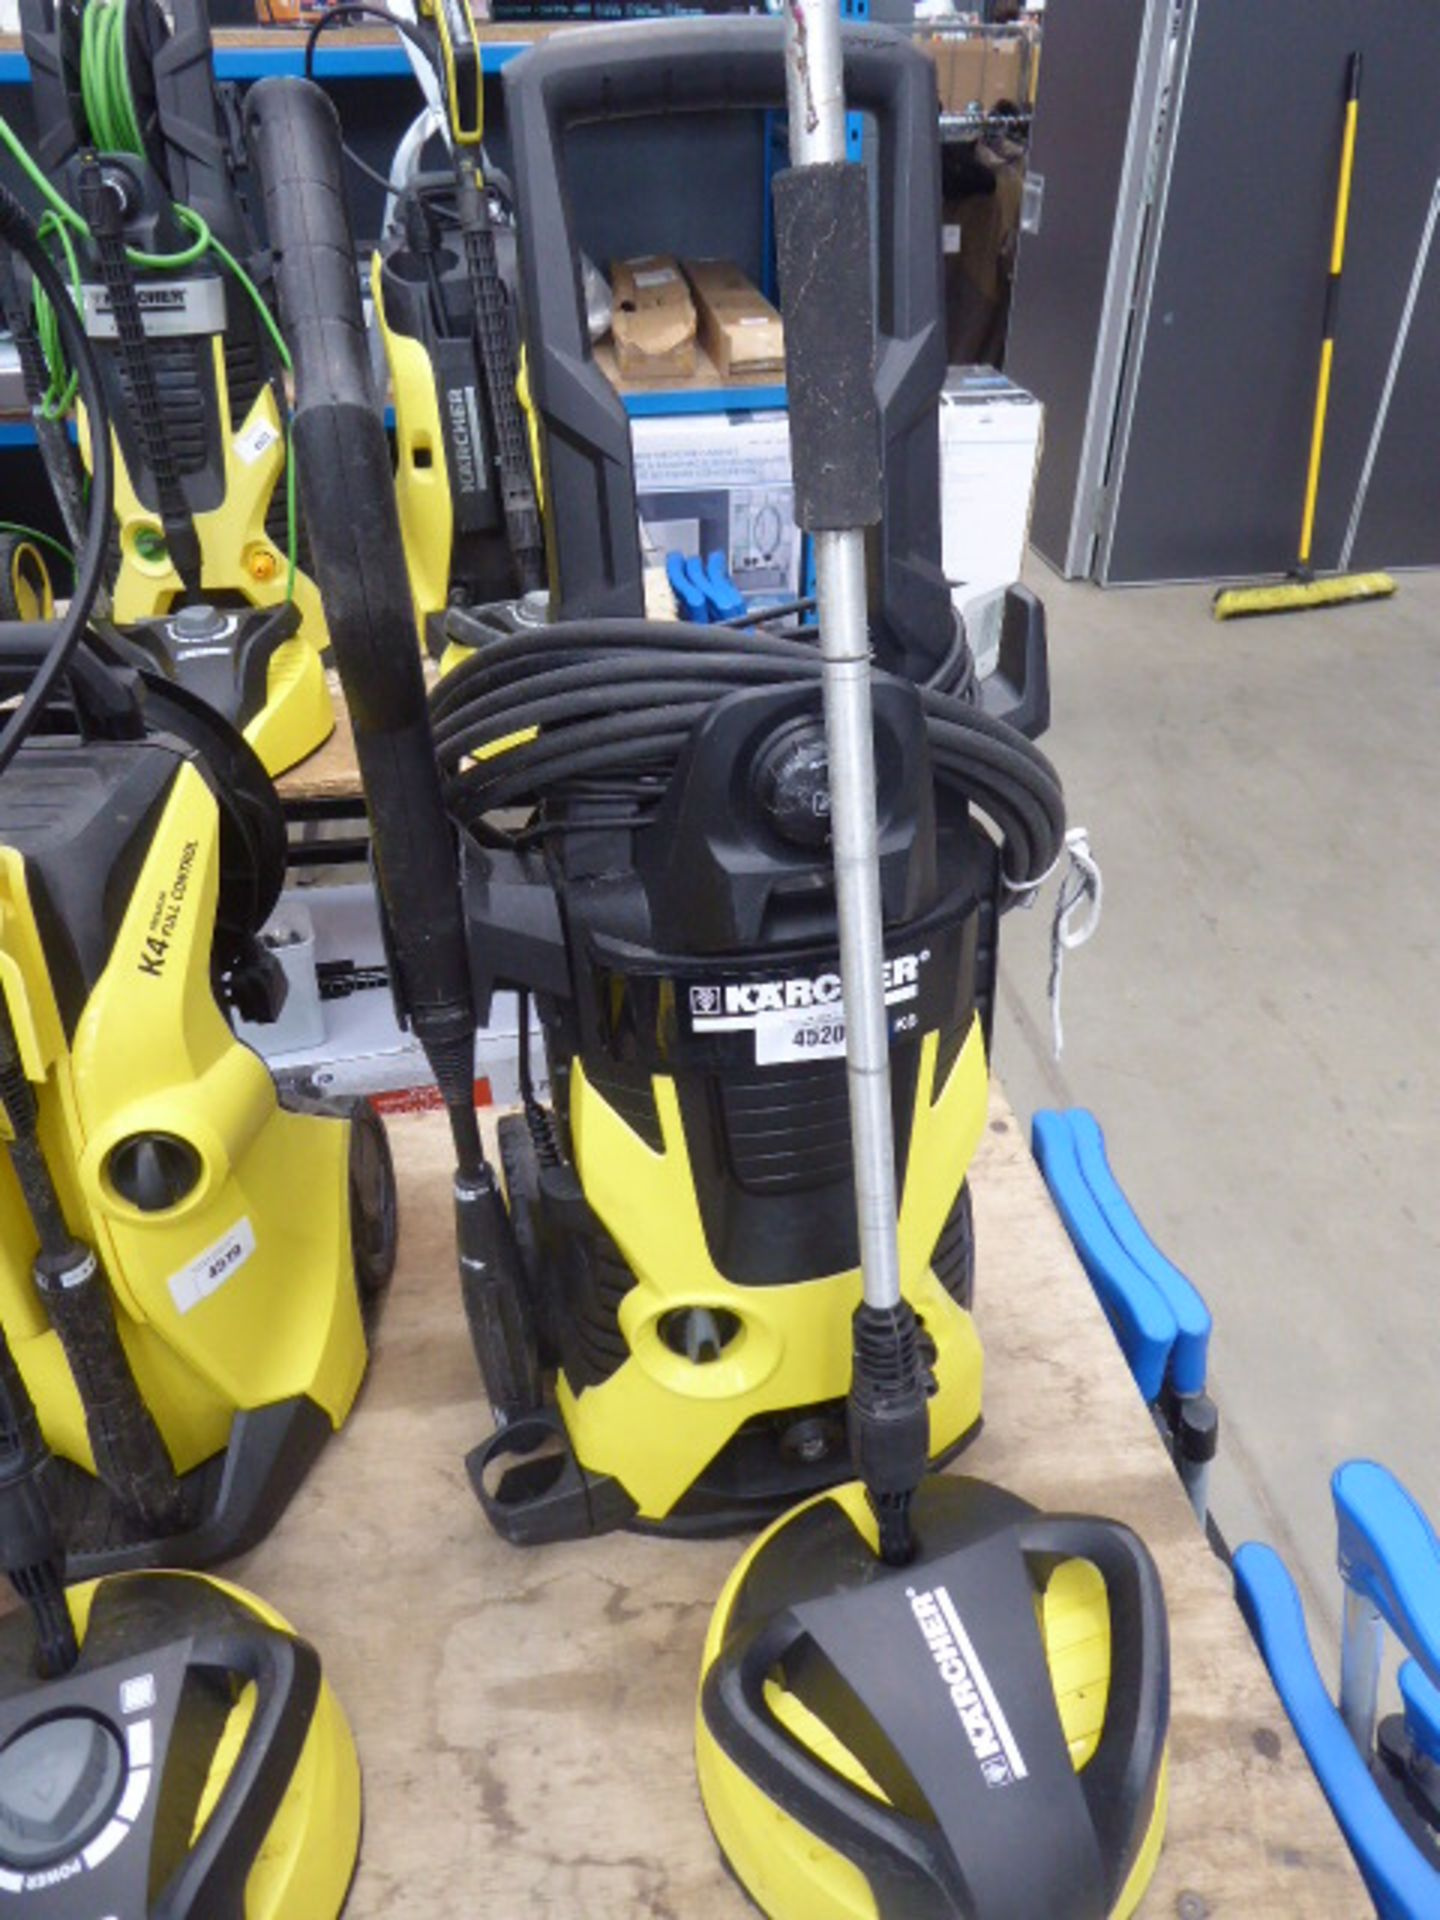 Lot 4393 - 4520 Karcher K5 electric pressure washer with patio cleaning head and 1 nozzle